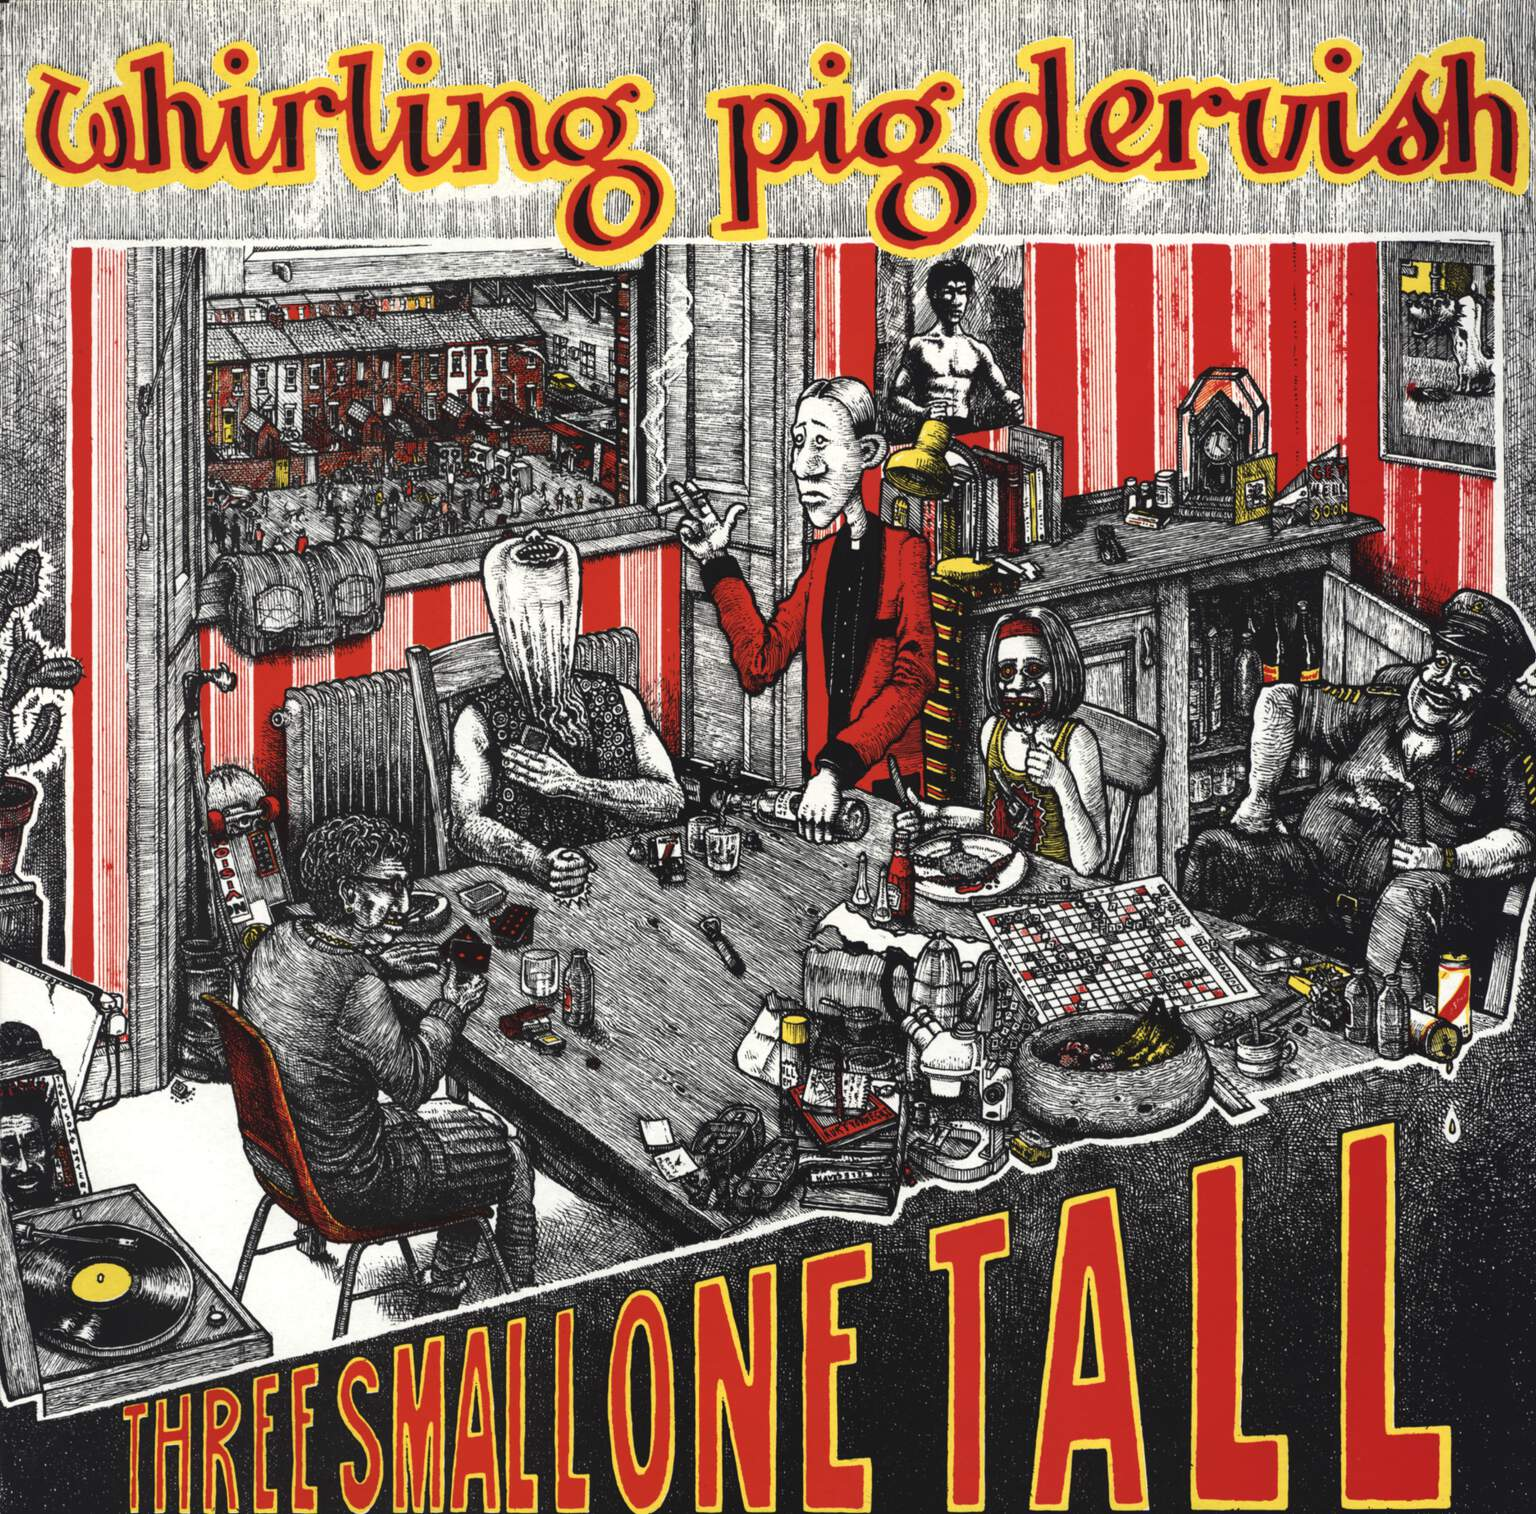 Whirling Pig Dervish: Three Small One Tall, LP (Vinyl)